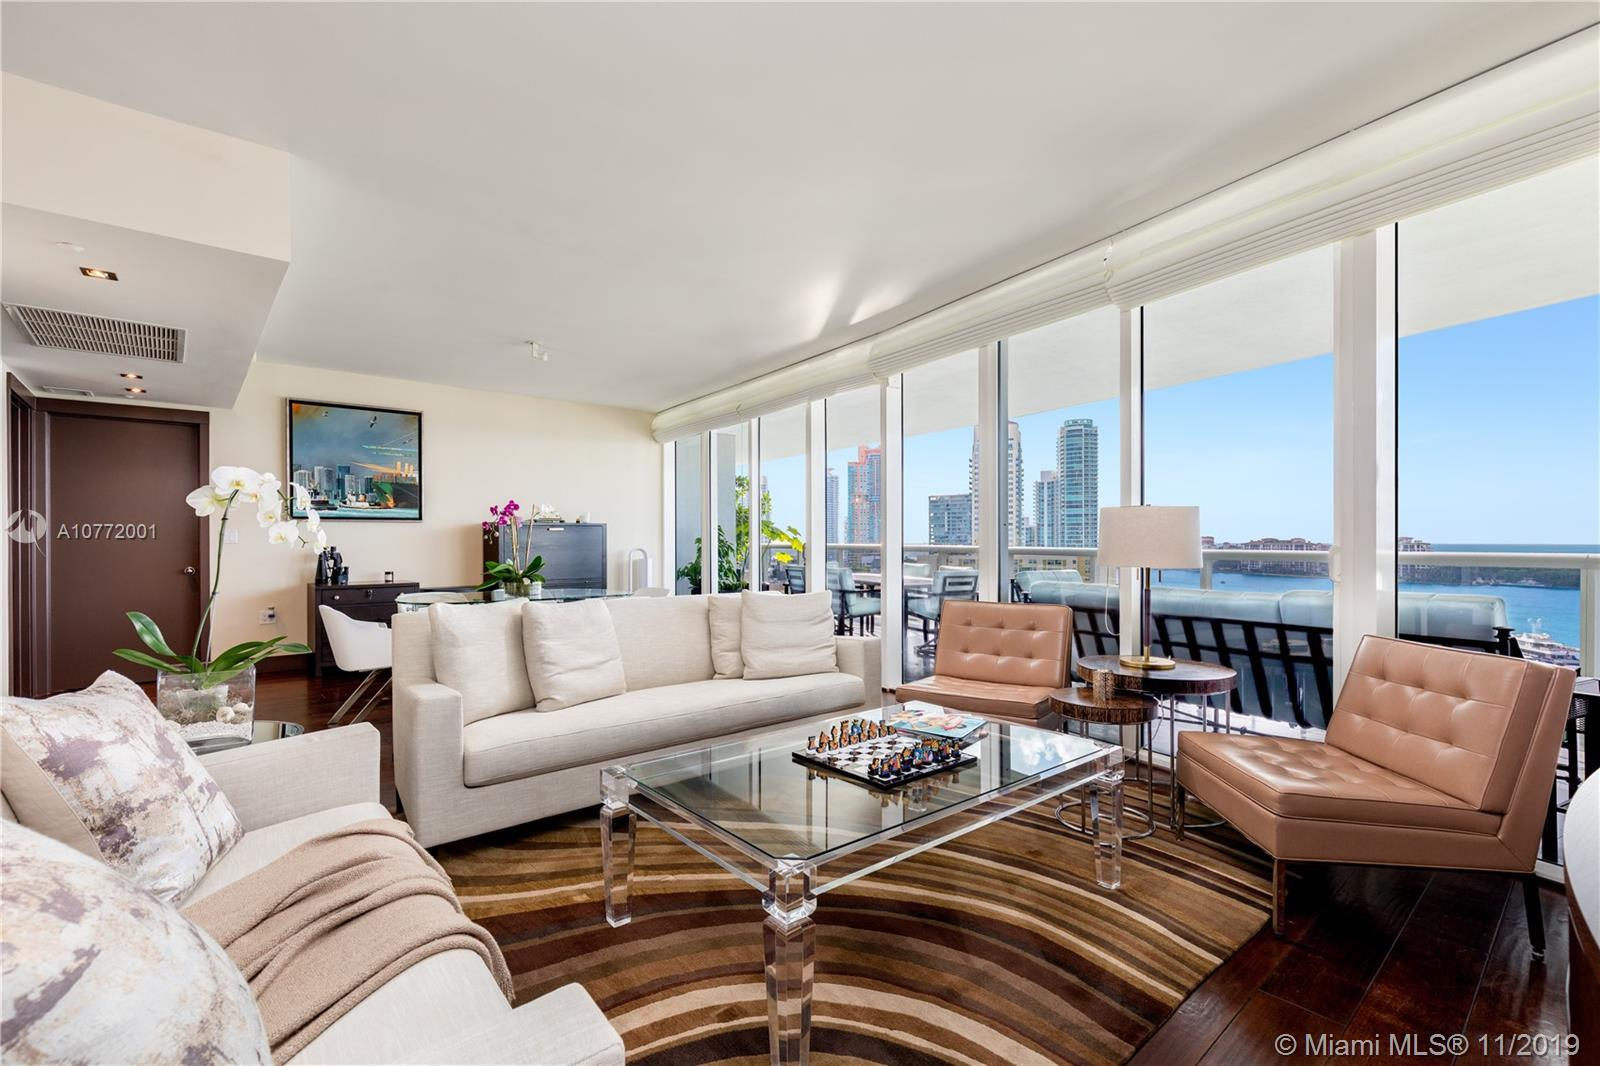 Panoramic bay views greet you as you enter this beautifully renovated apartment in the premier 06 li